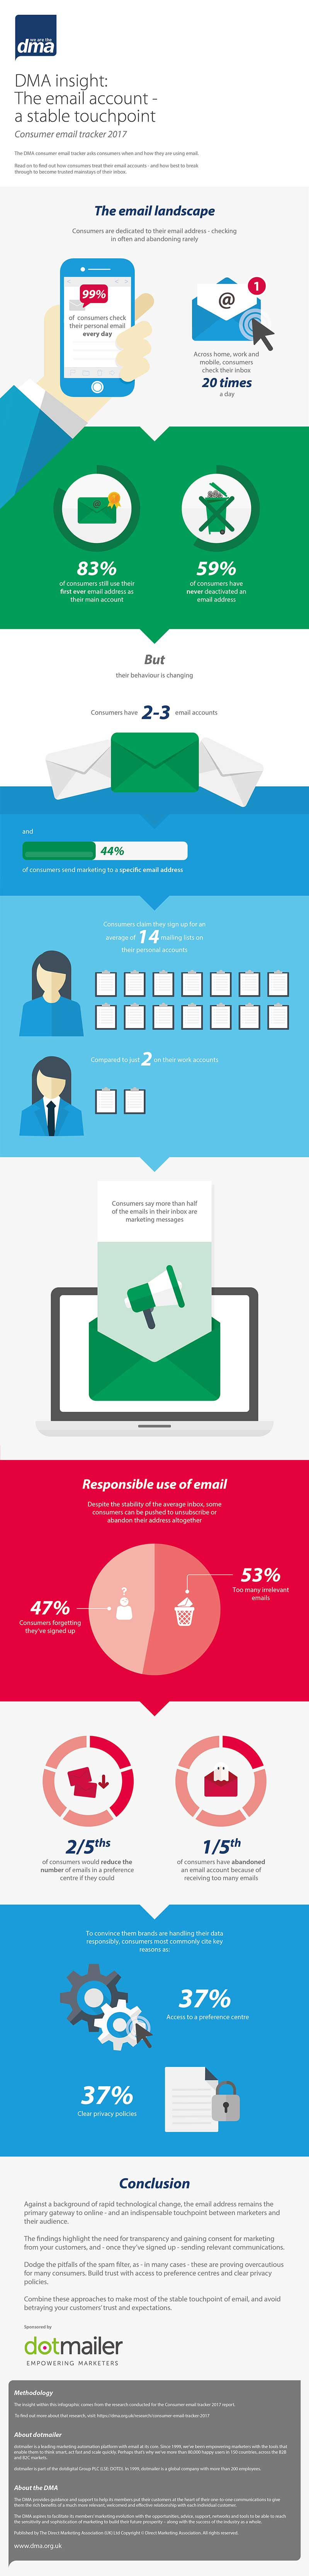 DMA Consumer email tracker 2017 - infographic